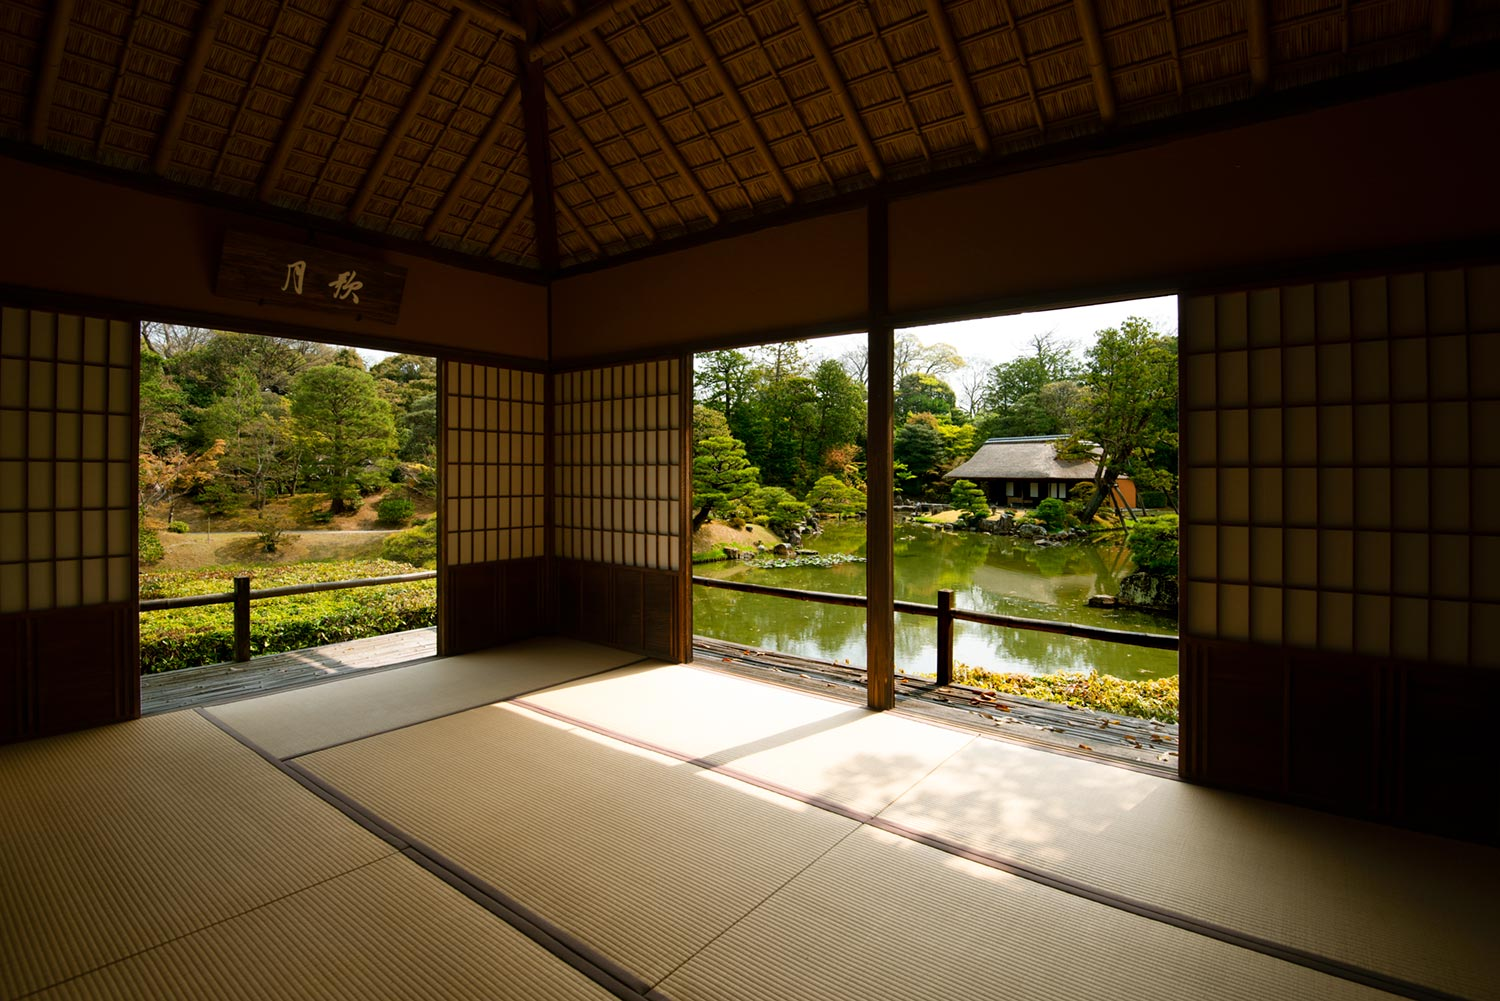 Katsura Villa - The Enigmatic Essence of Japanese Design